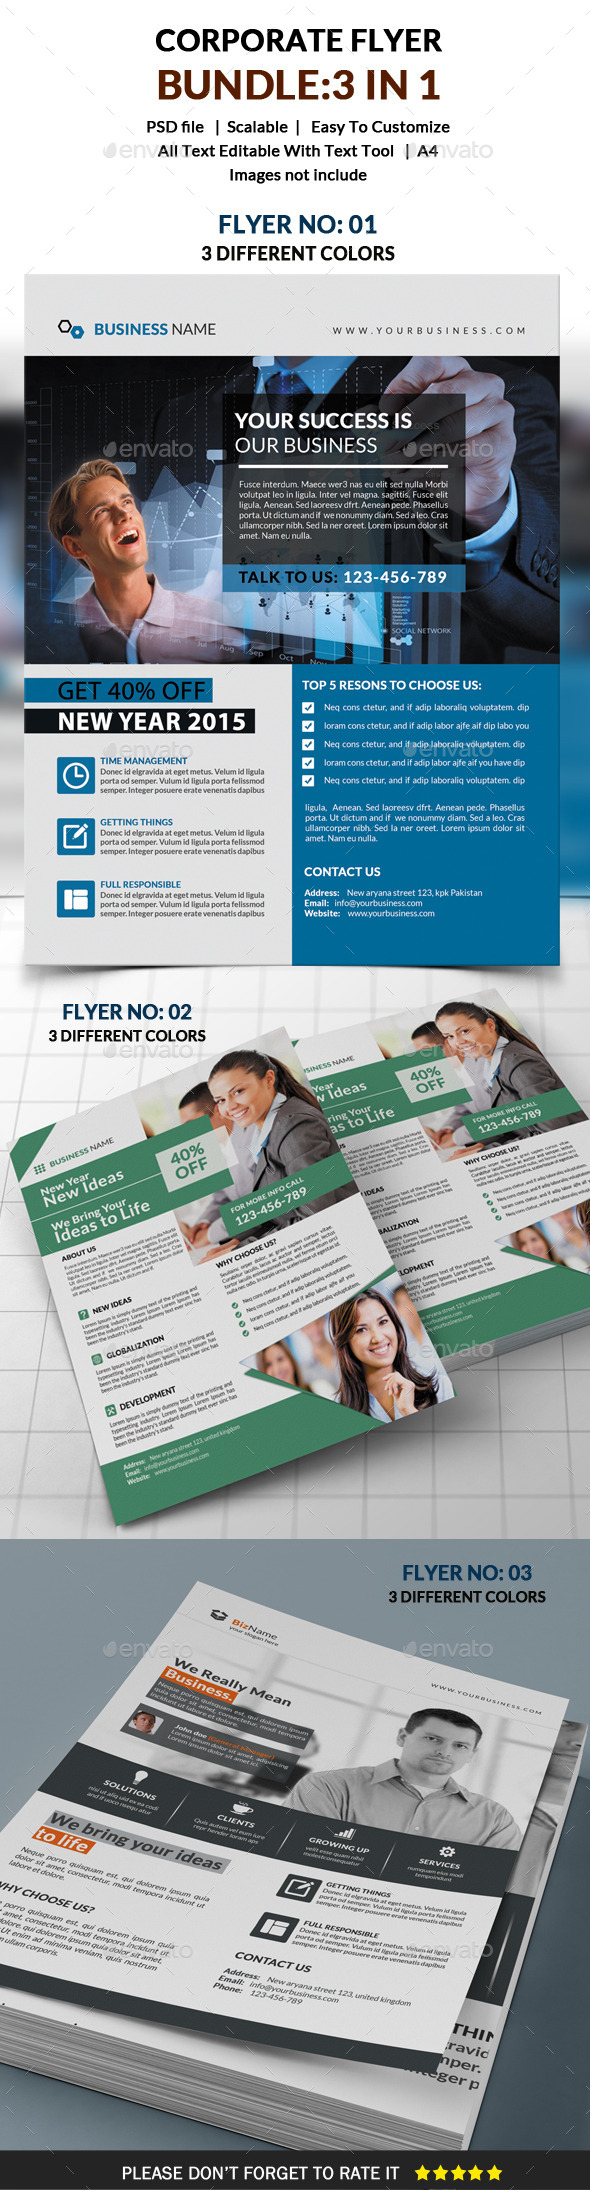 GraphicRiver Corporate Flyer Bundle 3 in 1 10126643